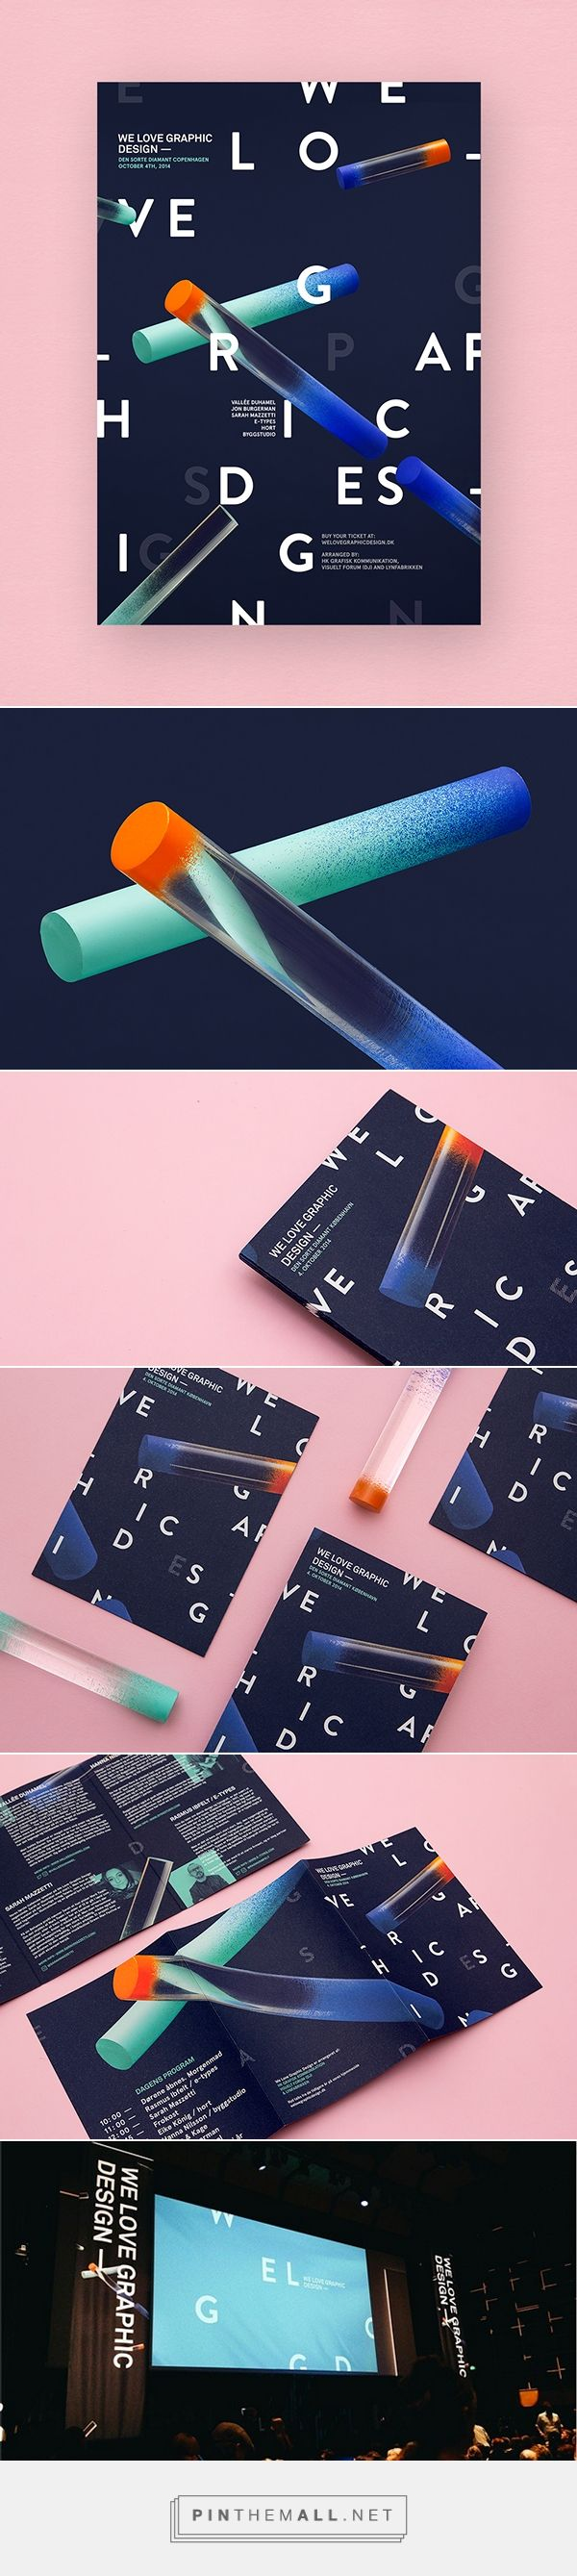 dark background, scattered typography, gradients, text in corners, sans serif font. We Love Graphic Design on Behance - created via http://pinthemall.net